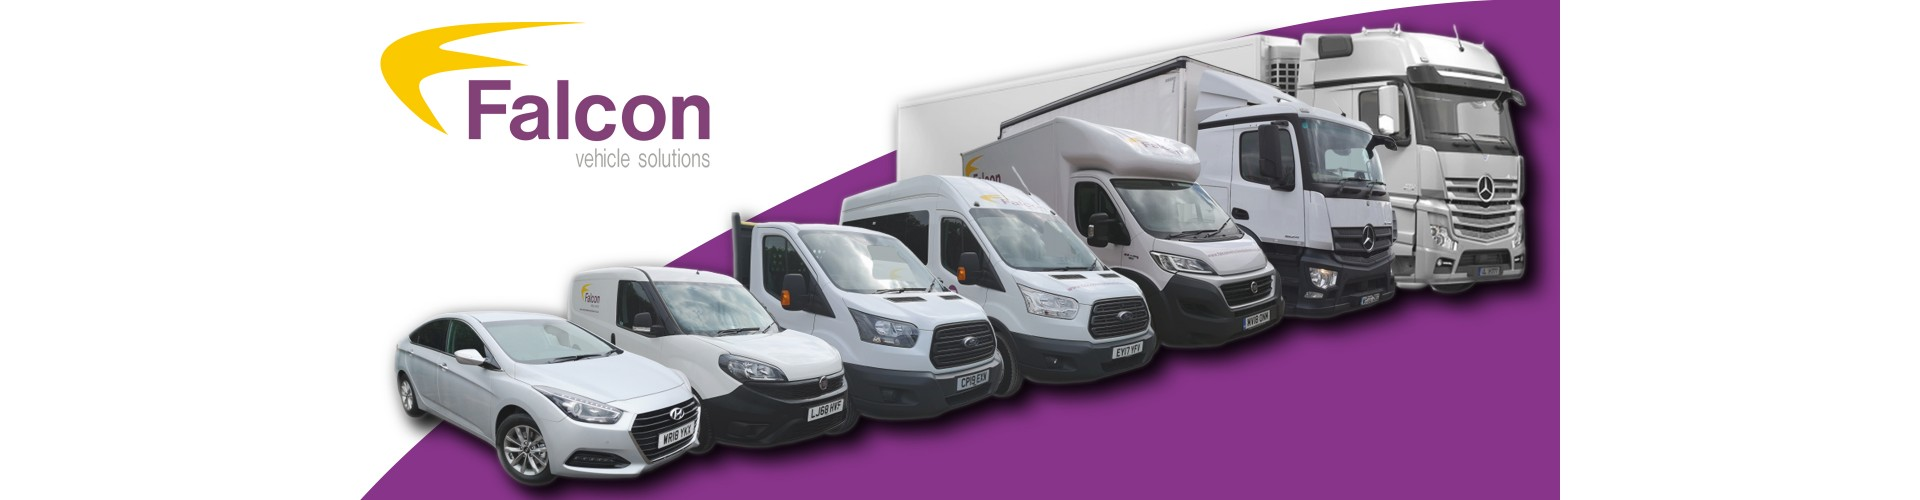 Falcon Vehicle Hire Car Van Lorry Minibuses Somerset